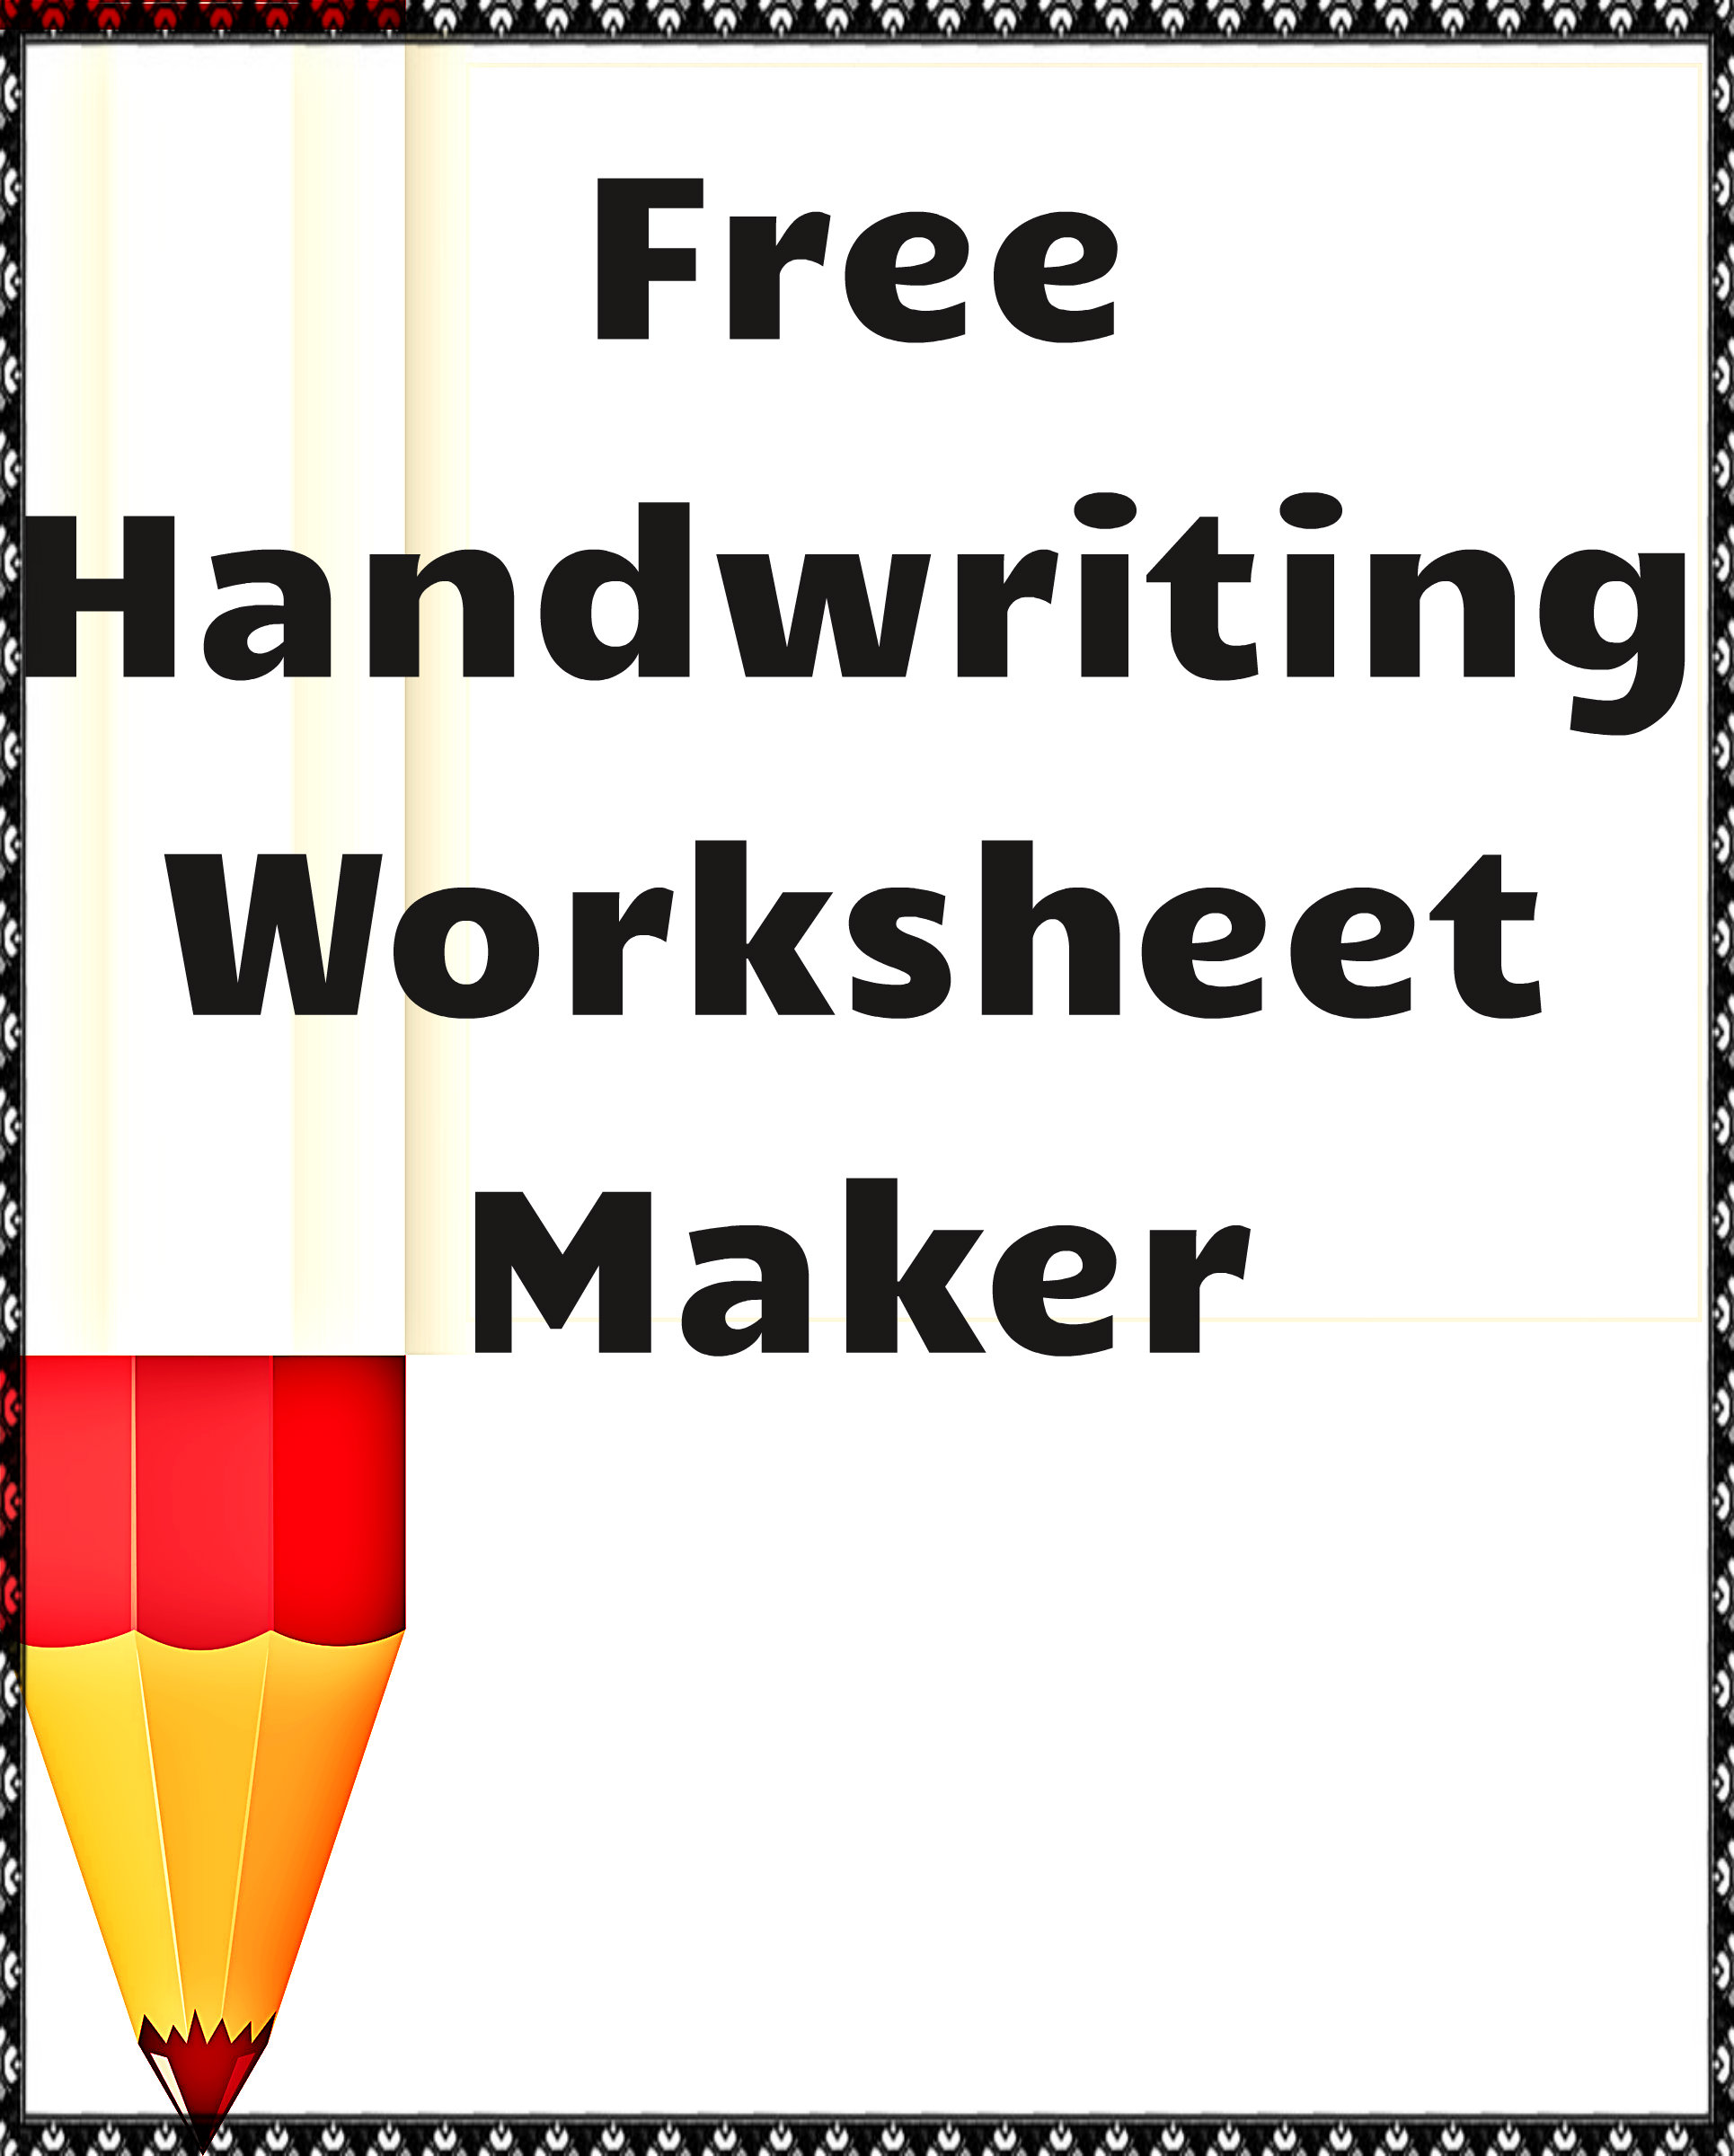 Printables Worksheet Generator Free generate handwriting worksheets pichaglobal worksheet maker free classroom tools readyteacher com